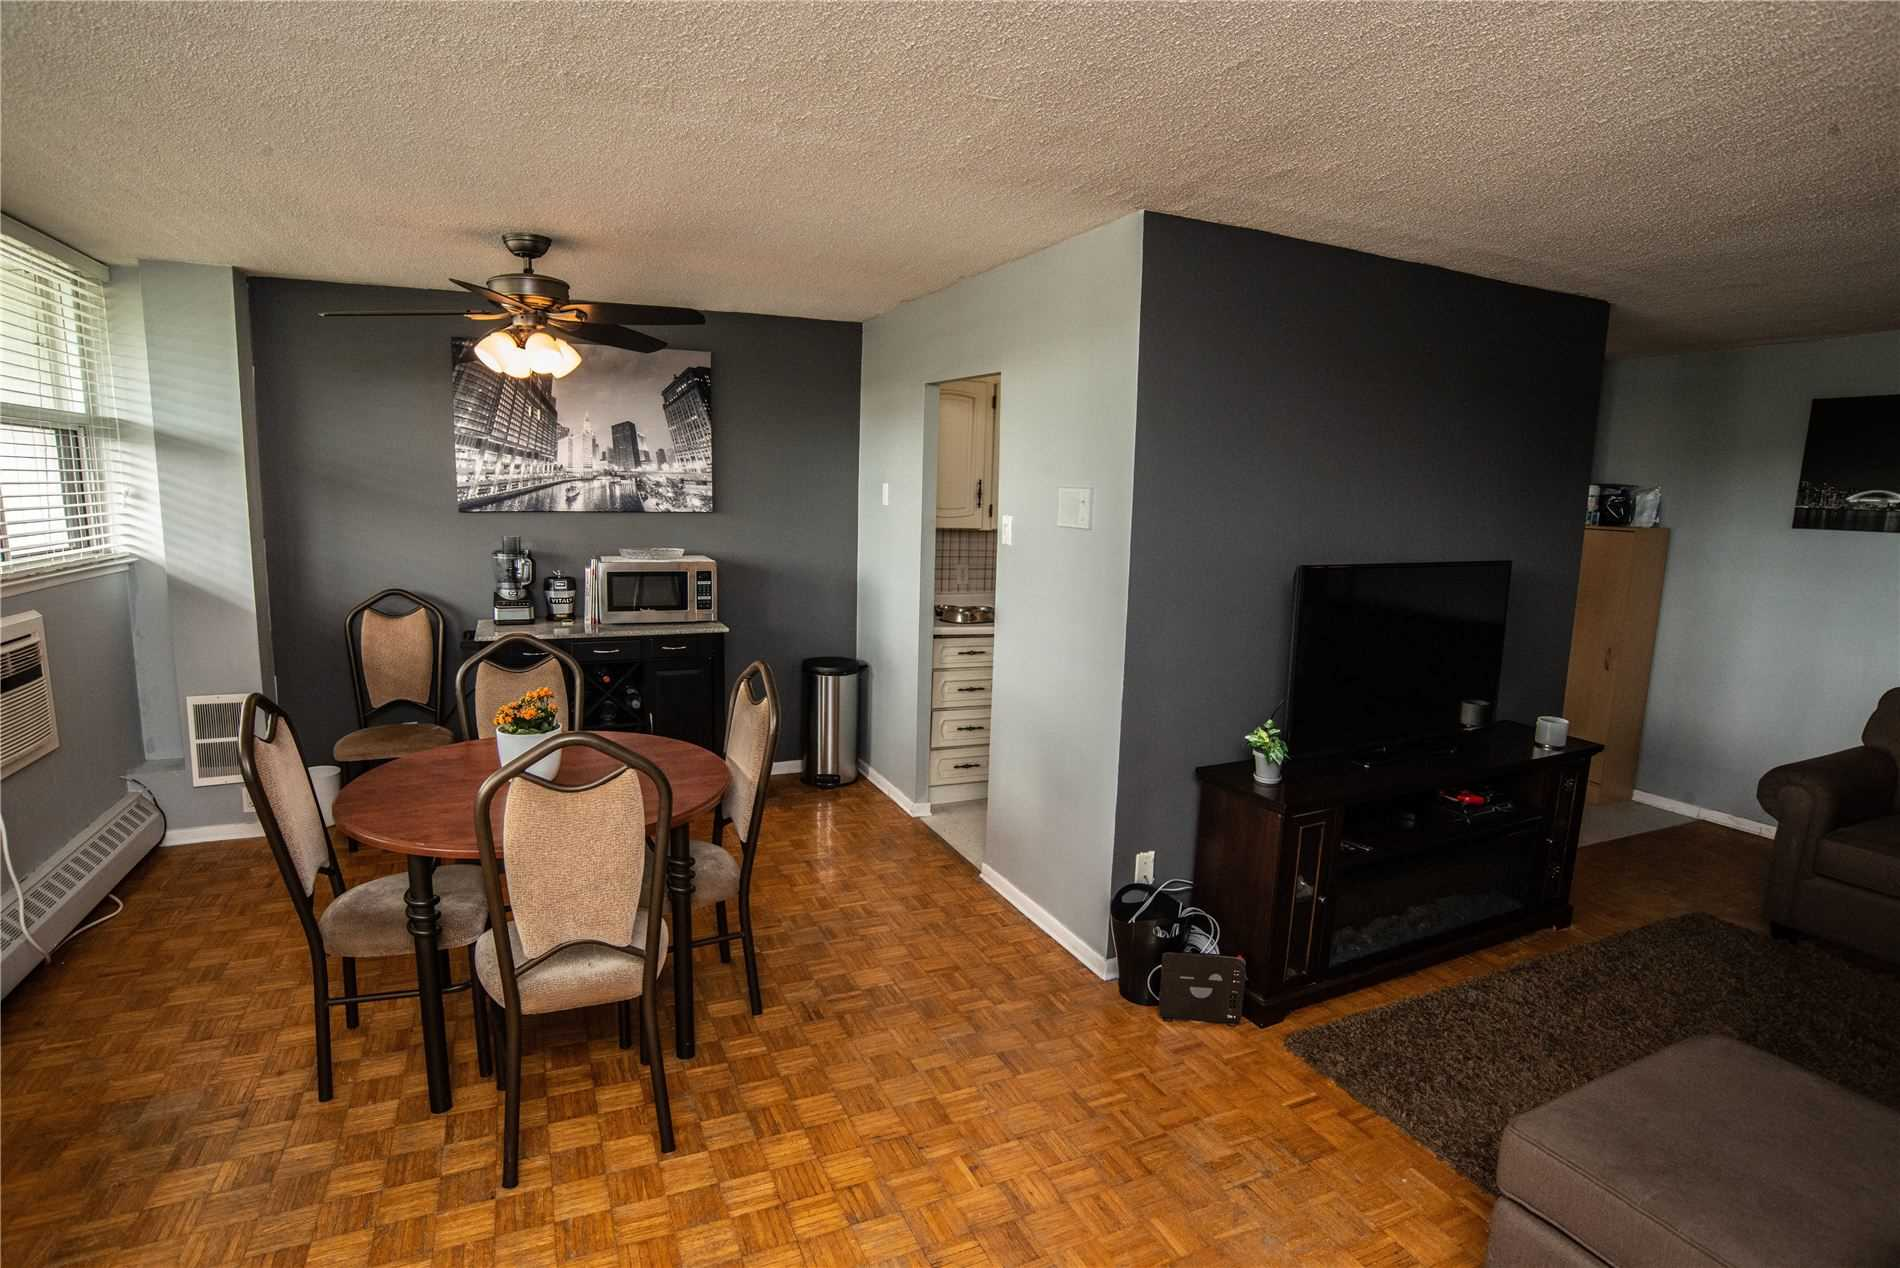 Image 19 of 20 showing inside of 1 Bedroom Condo Apt Apartment for Sale at 215 Glenridge Ave Unit# 310, St. Catharines L2T3J7